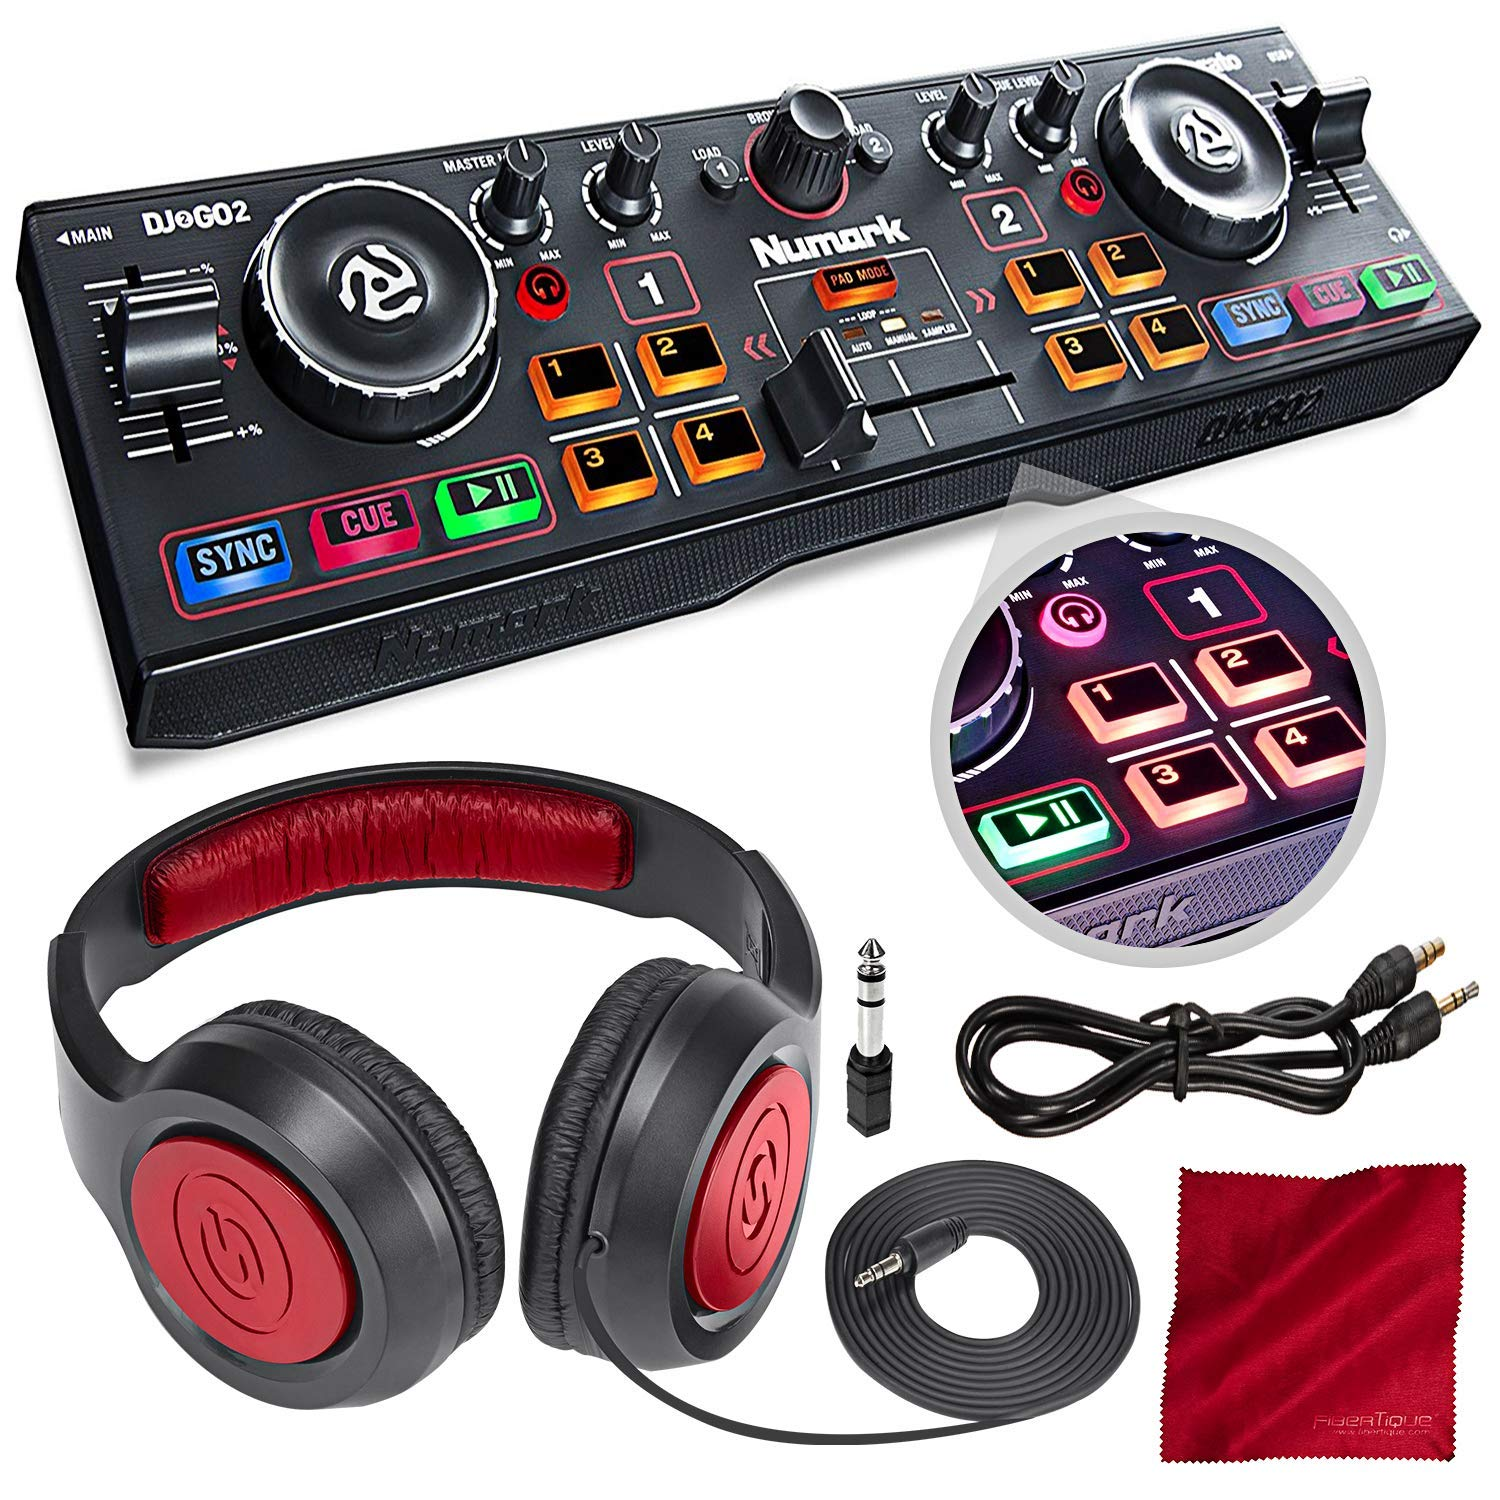 Numark DJ2GO2 Pocket DJ Controller with Audio Interface and Headphones Accessory Bundle by Numark - Photo Savings (Image #1)